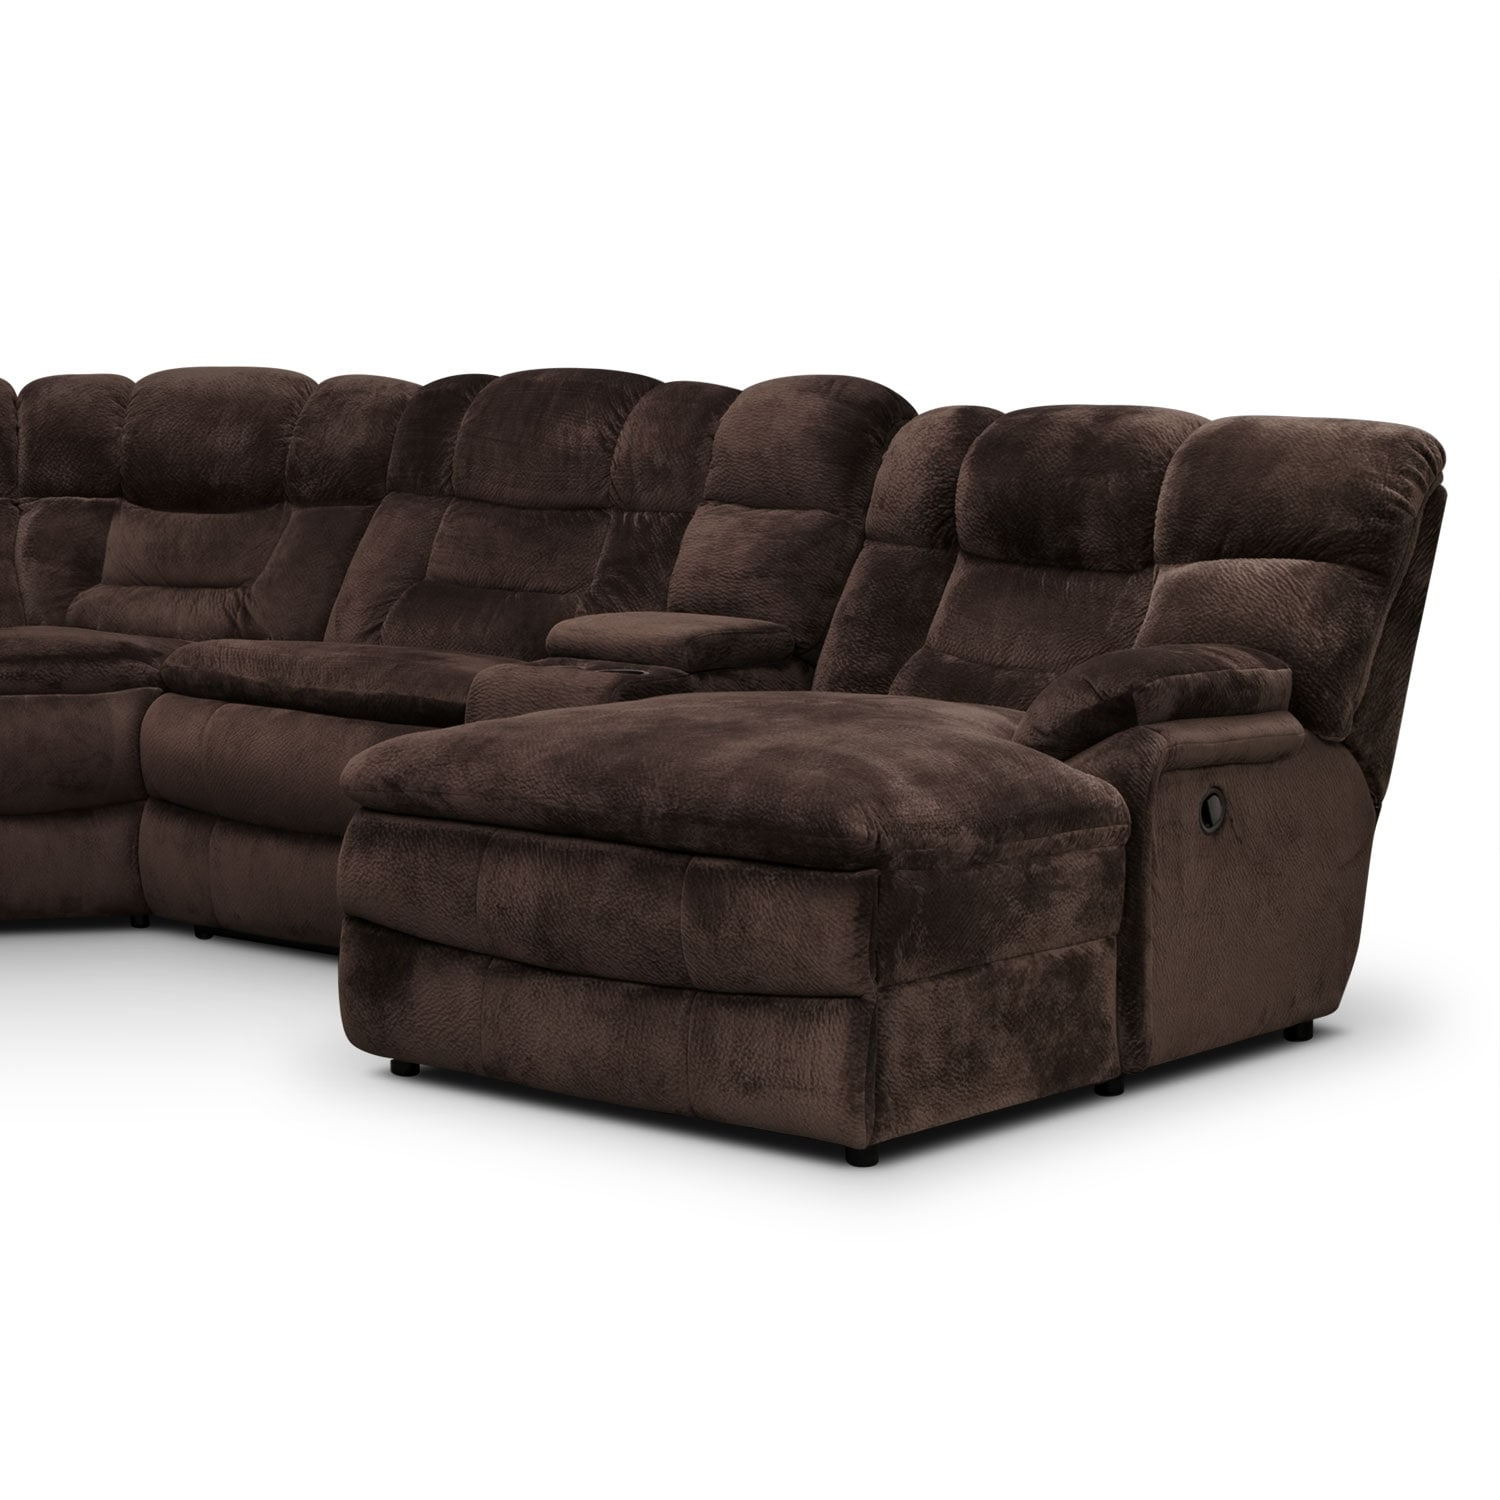 Big Softie 6 Pc Power Reclining Sectional American